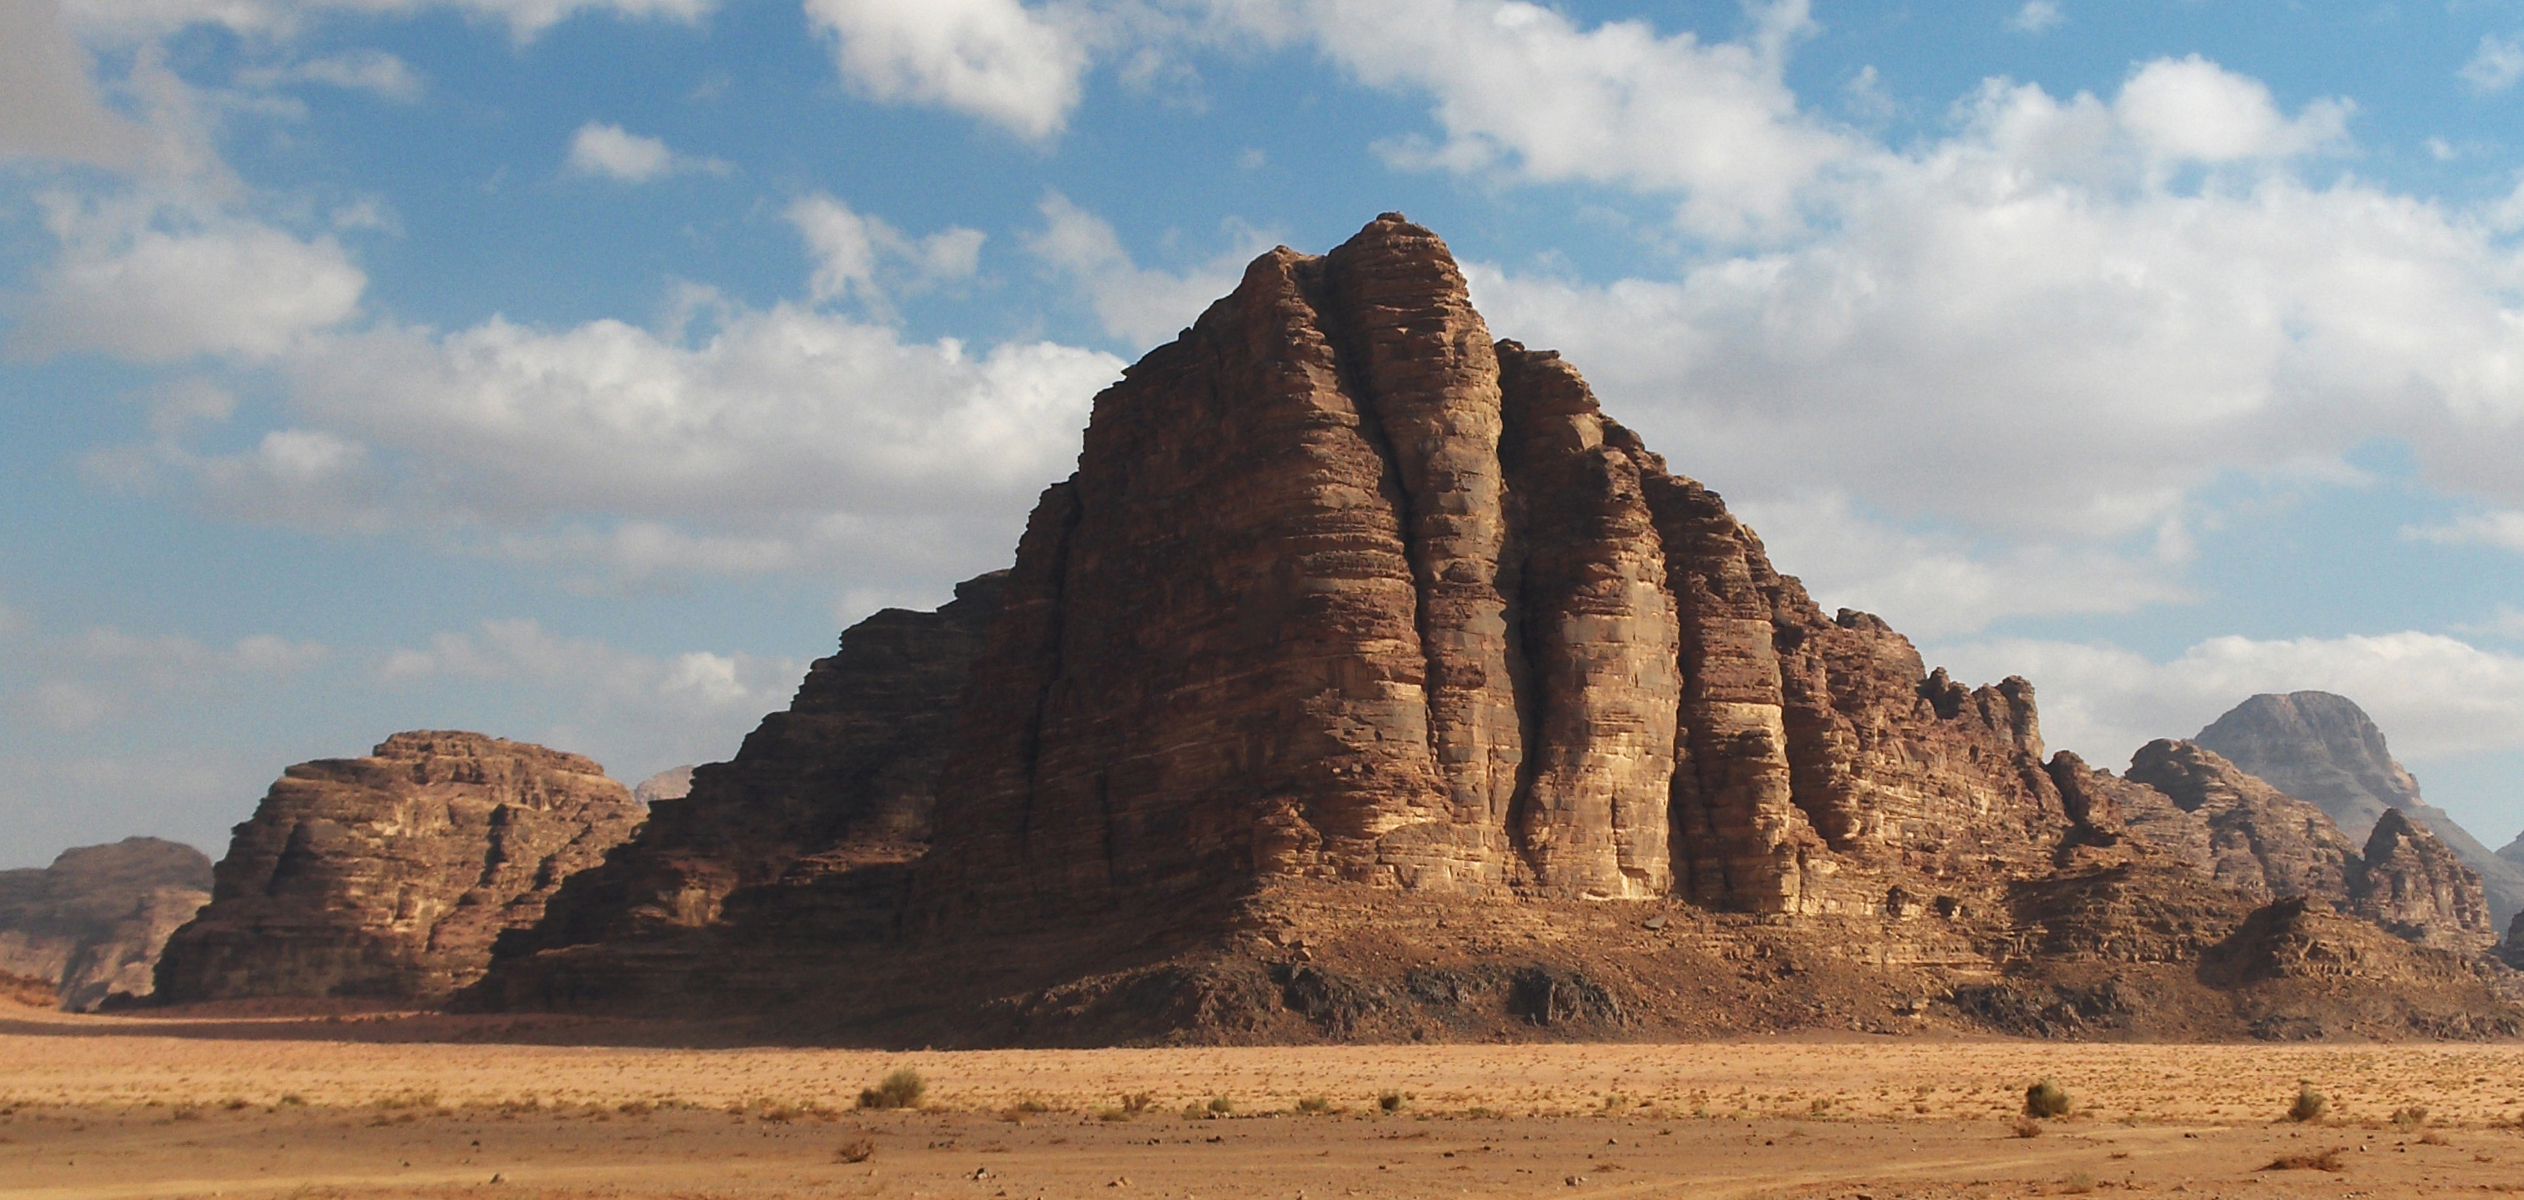 Seven Pillars of Wisdom rock formation in Wadi Rum, Jordan